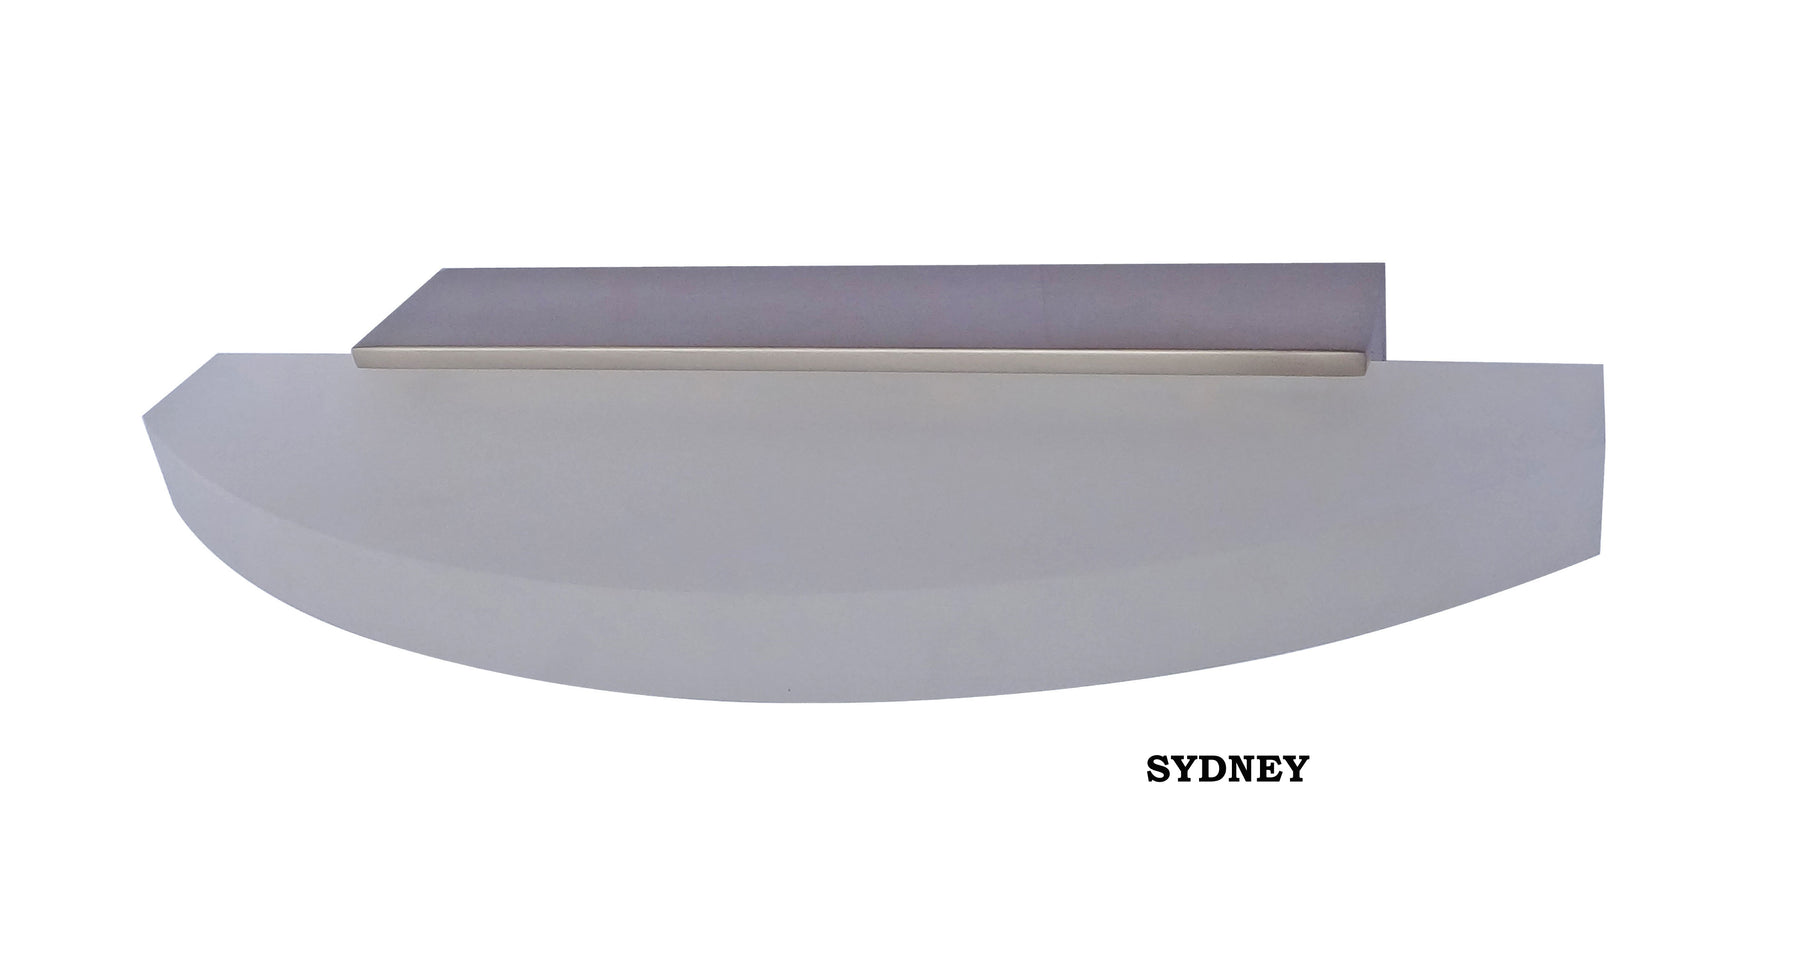 Sydney LED Interior Wall Light CLA Lighting